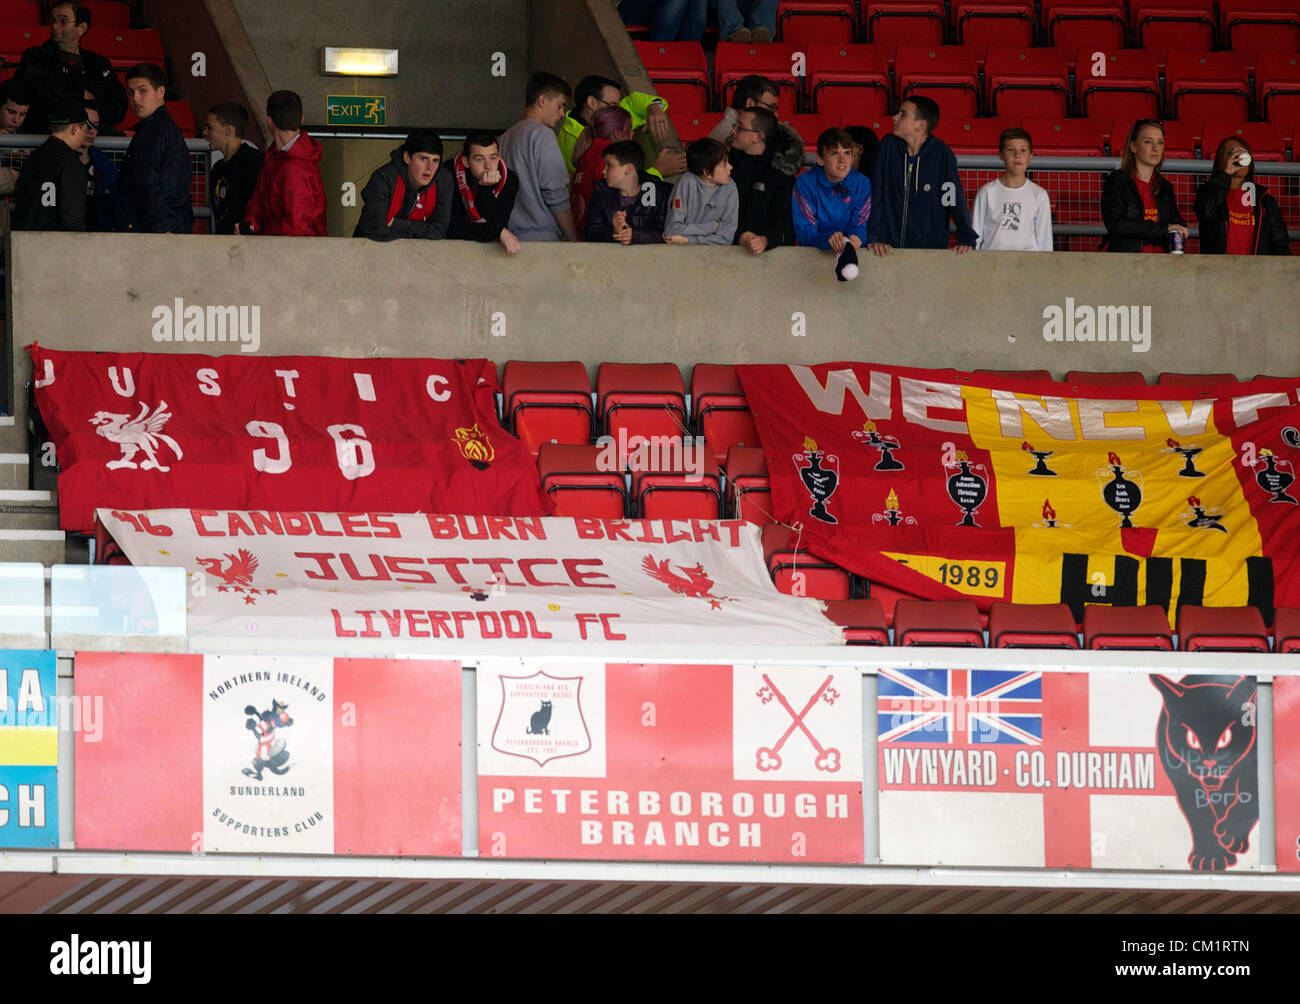 Barclays English Premier League Football - Sunderland AFC v Liverpool FC. Liverpool banners  during The Barclays - Stock Image